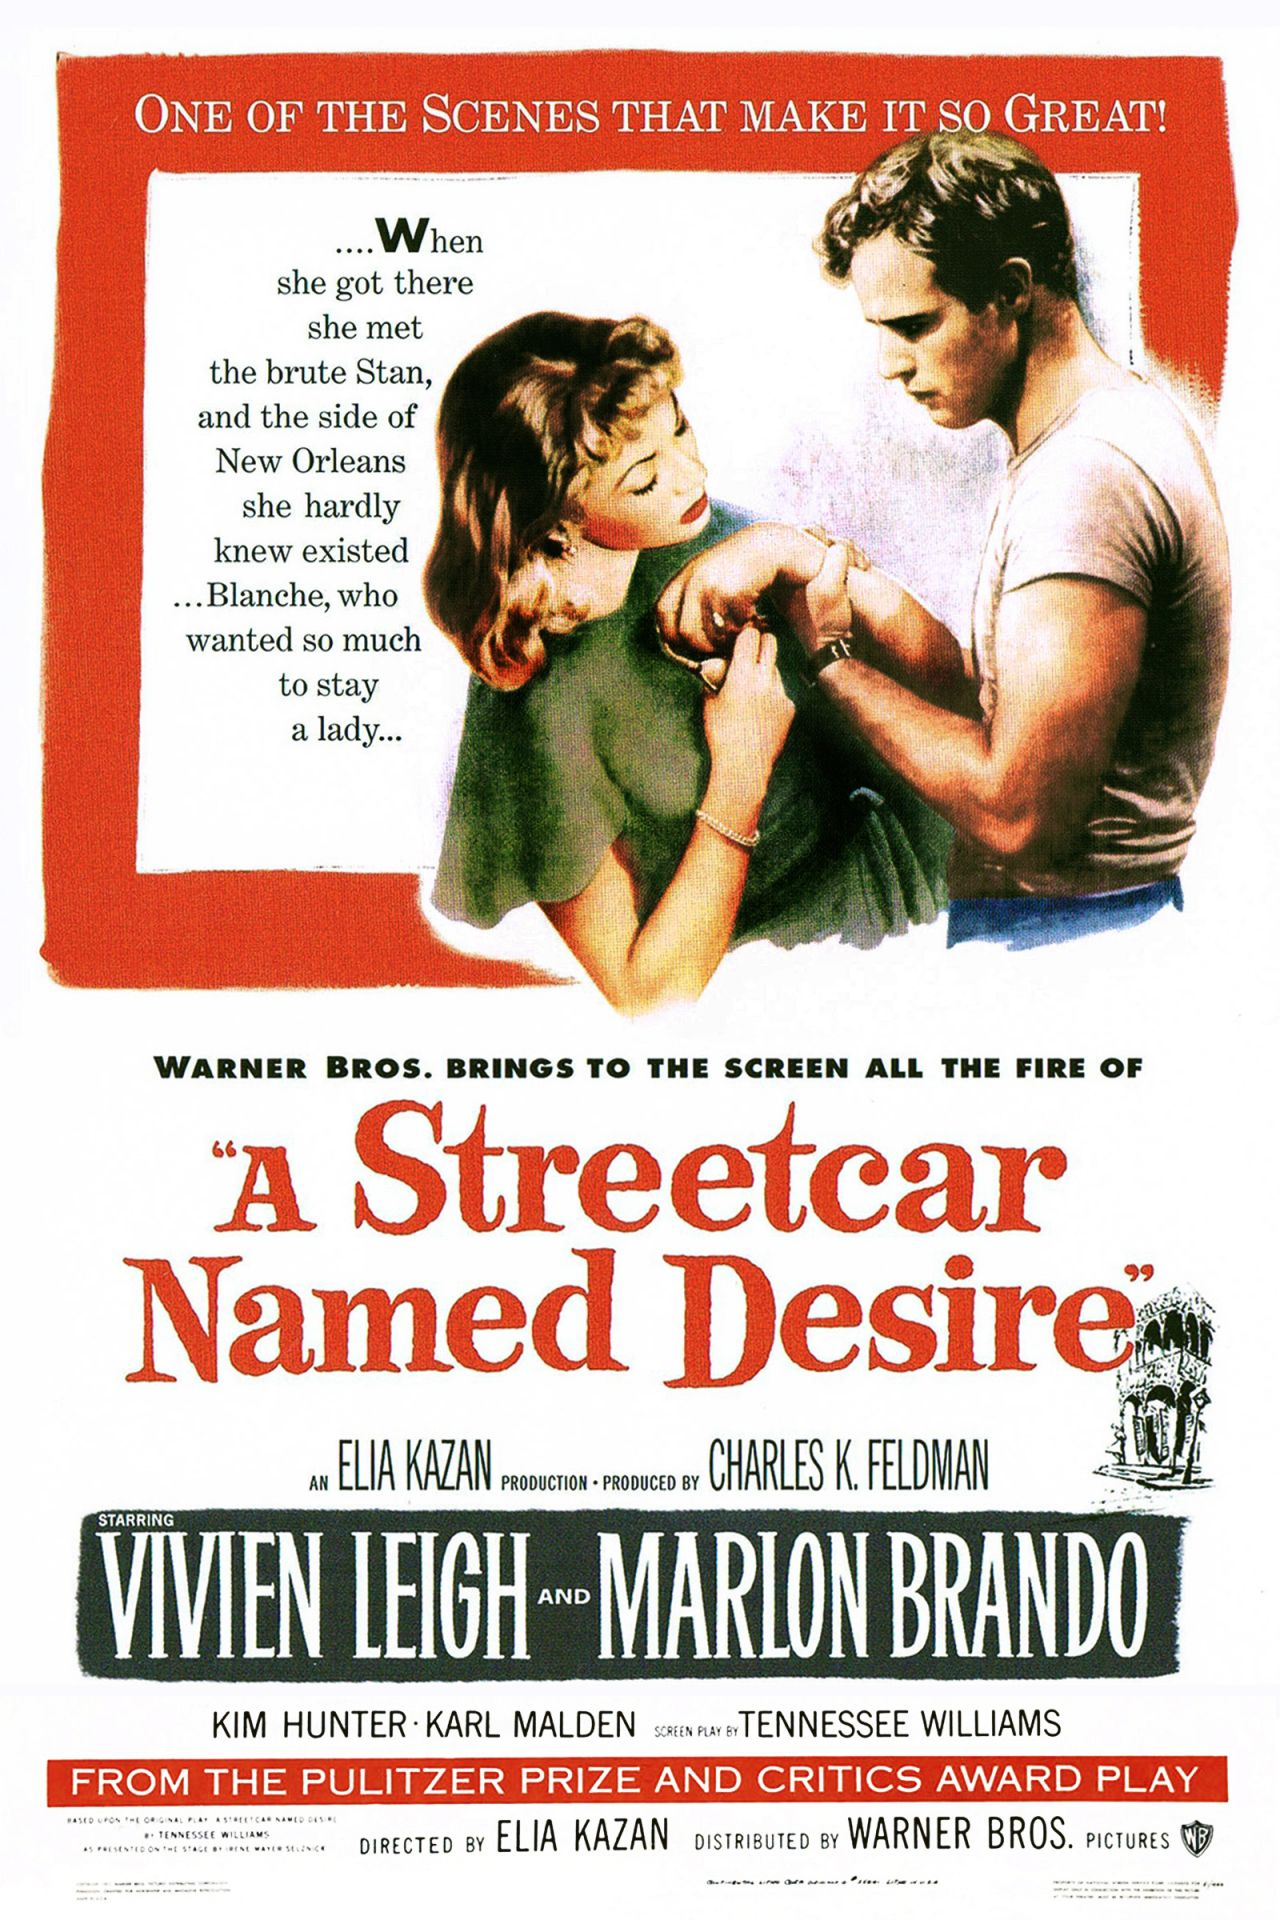 the journey of blanche in the play a streetcar named desire by tennessee williams